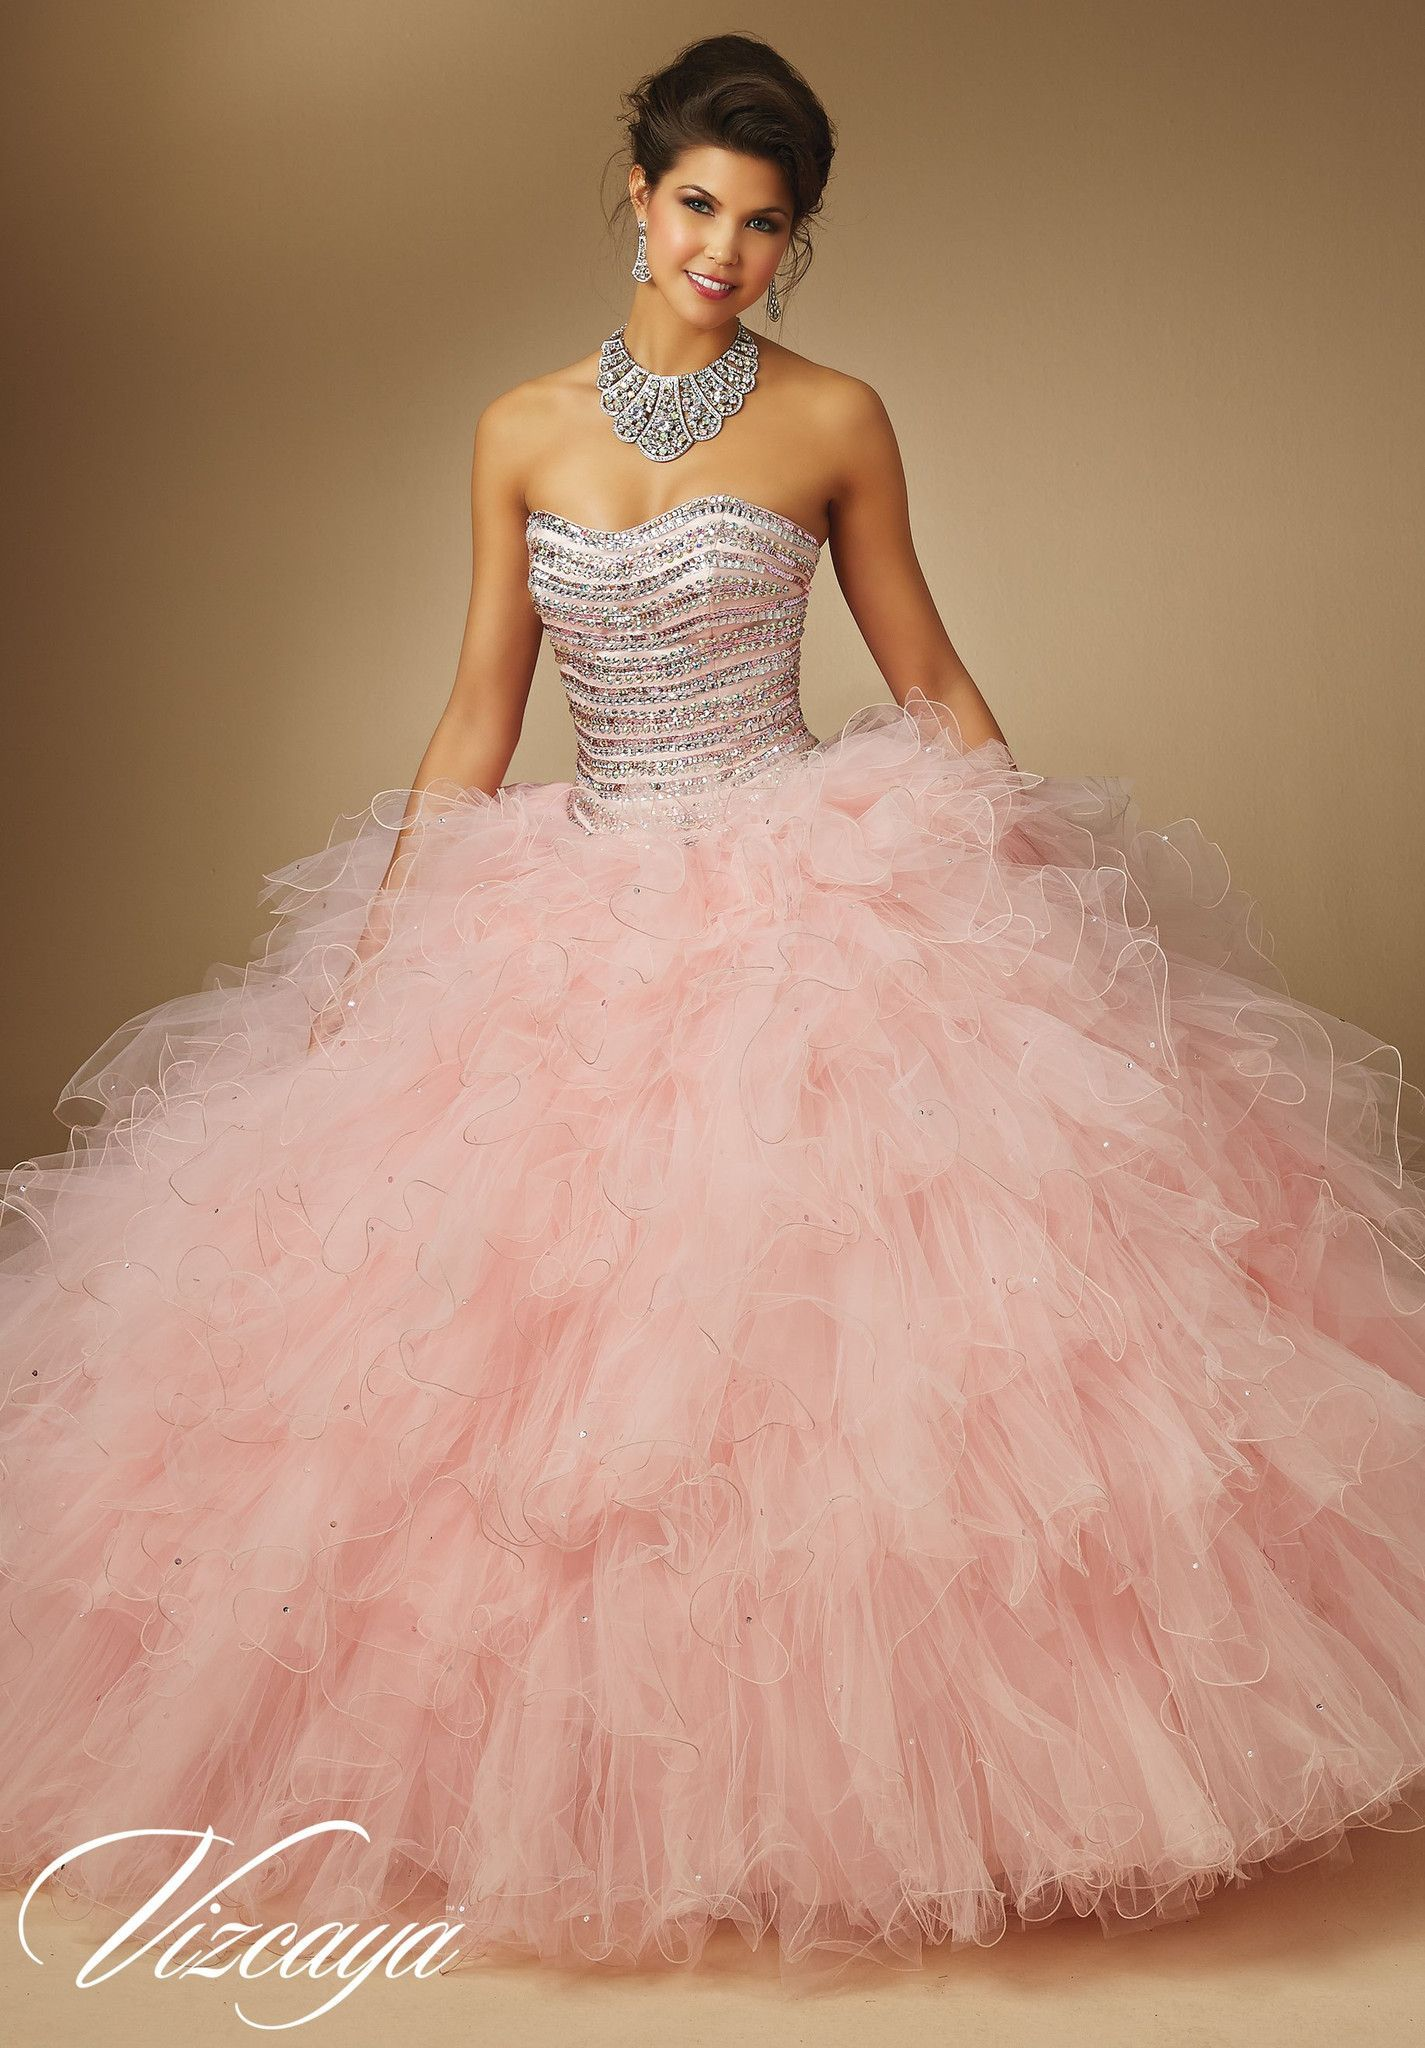 Mori Lee Quinceanera Dress 89046 | Sweet 15, Mori lee and Ball gowns